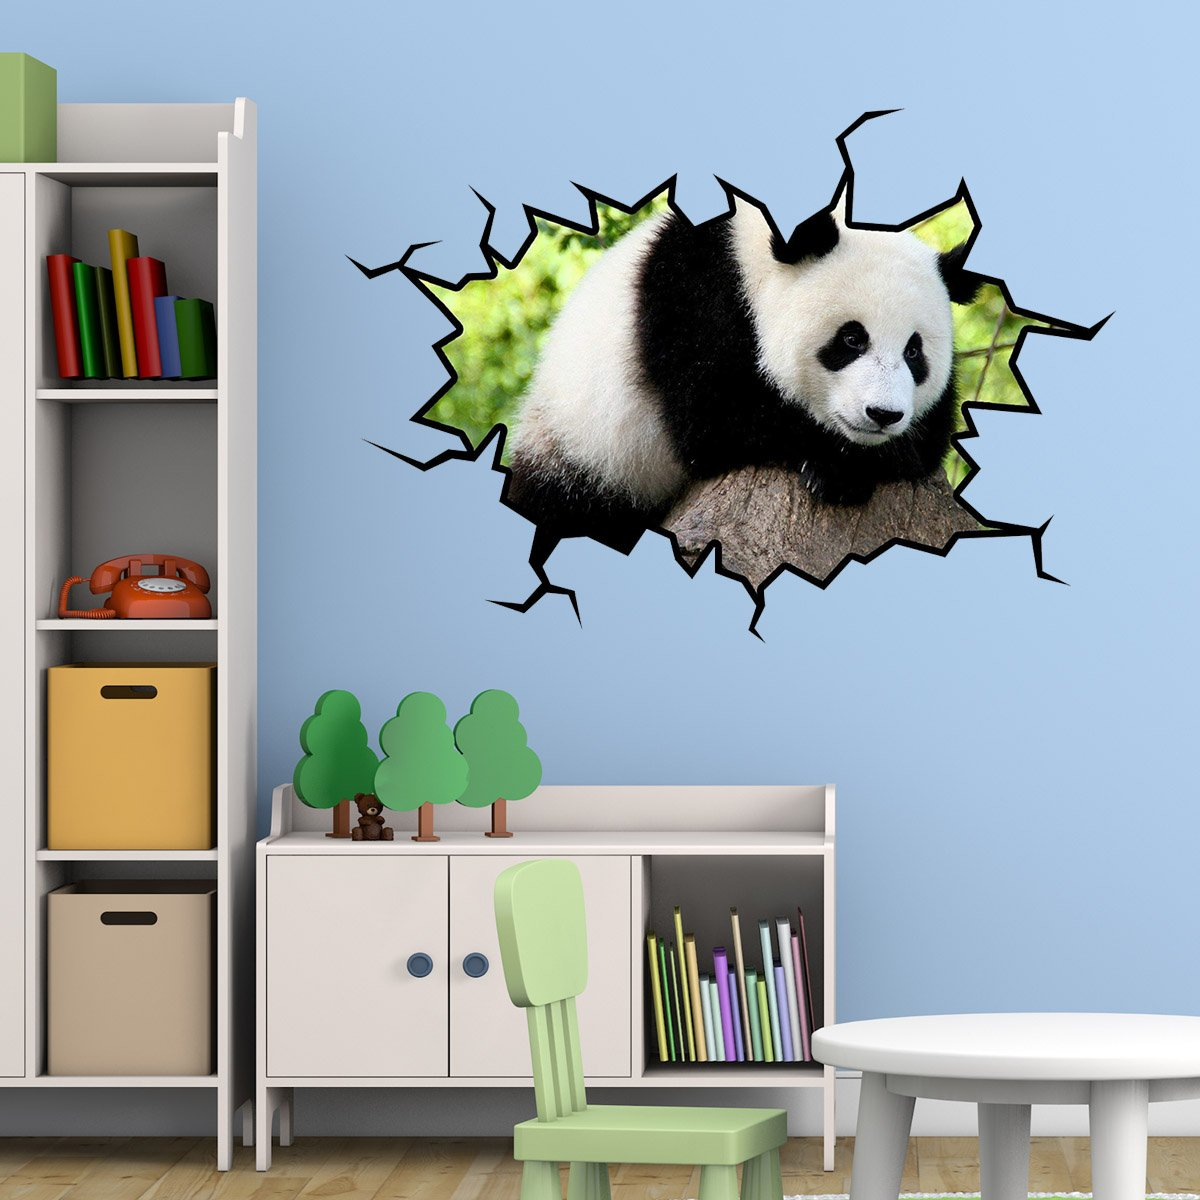 VWAQ Panda Bear Wall Decal Hole in the Wall Crack Removable Wall Decal - WC26 - VWAQ Vinyl Wall Art Quotes and Prints